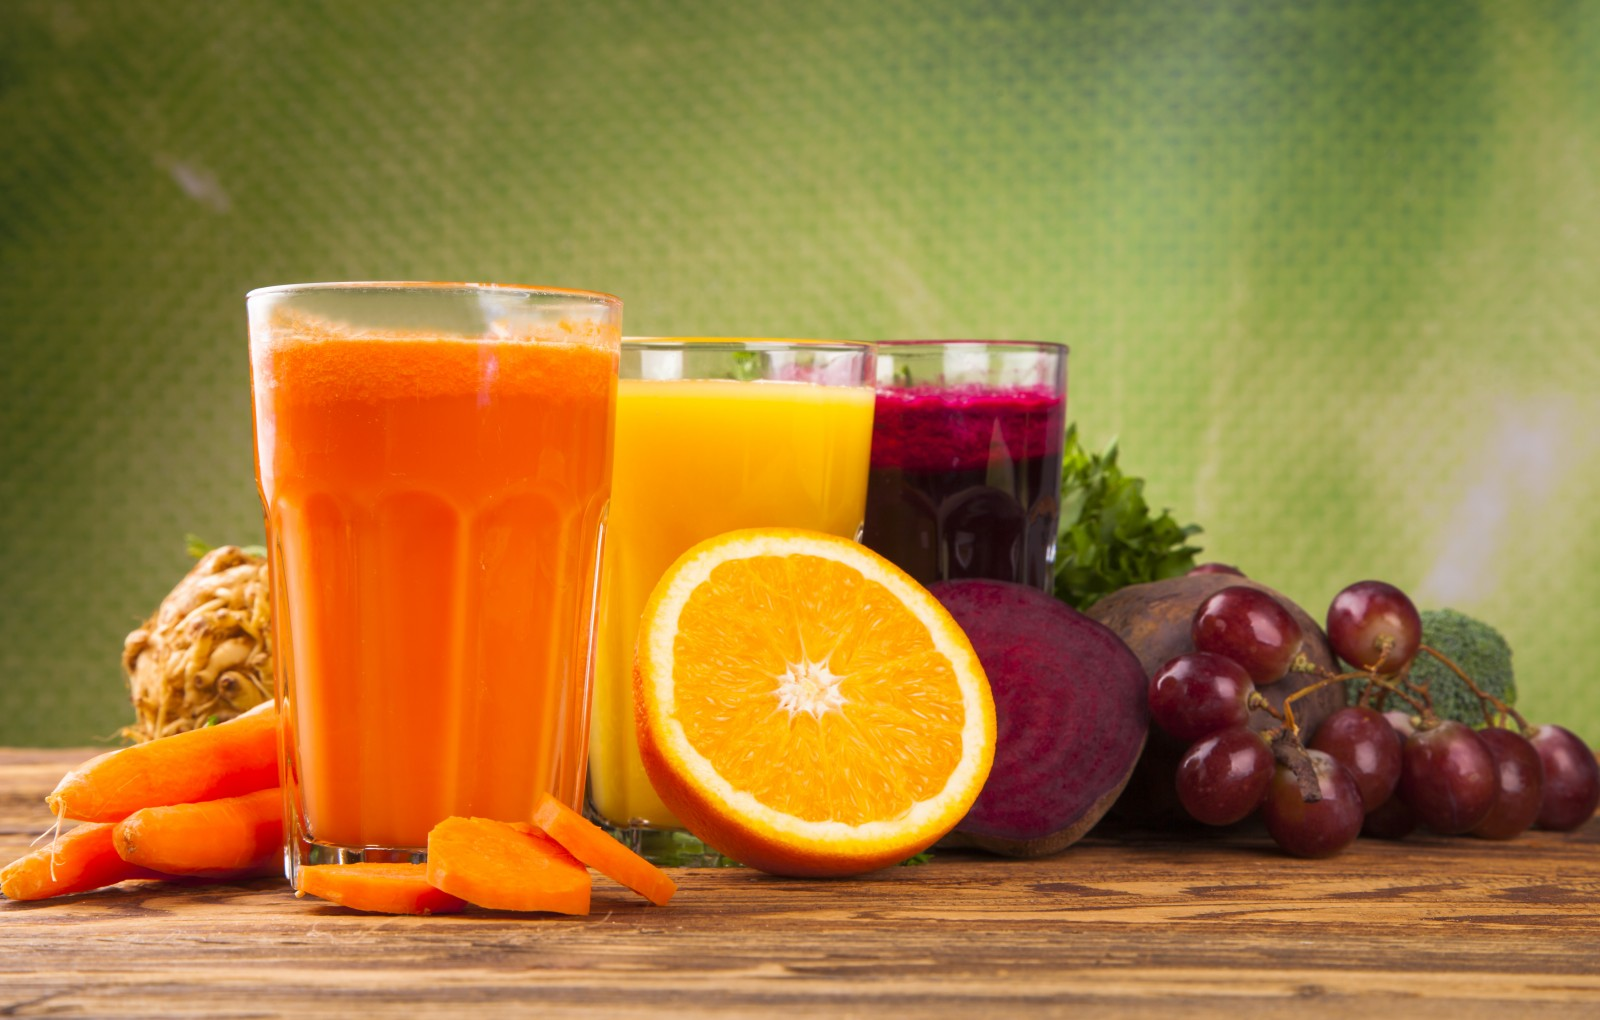 TidalCreek_Co-op Cafe_ Juice Bar Juices